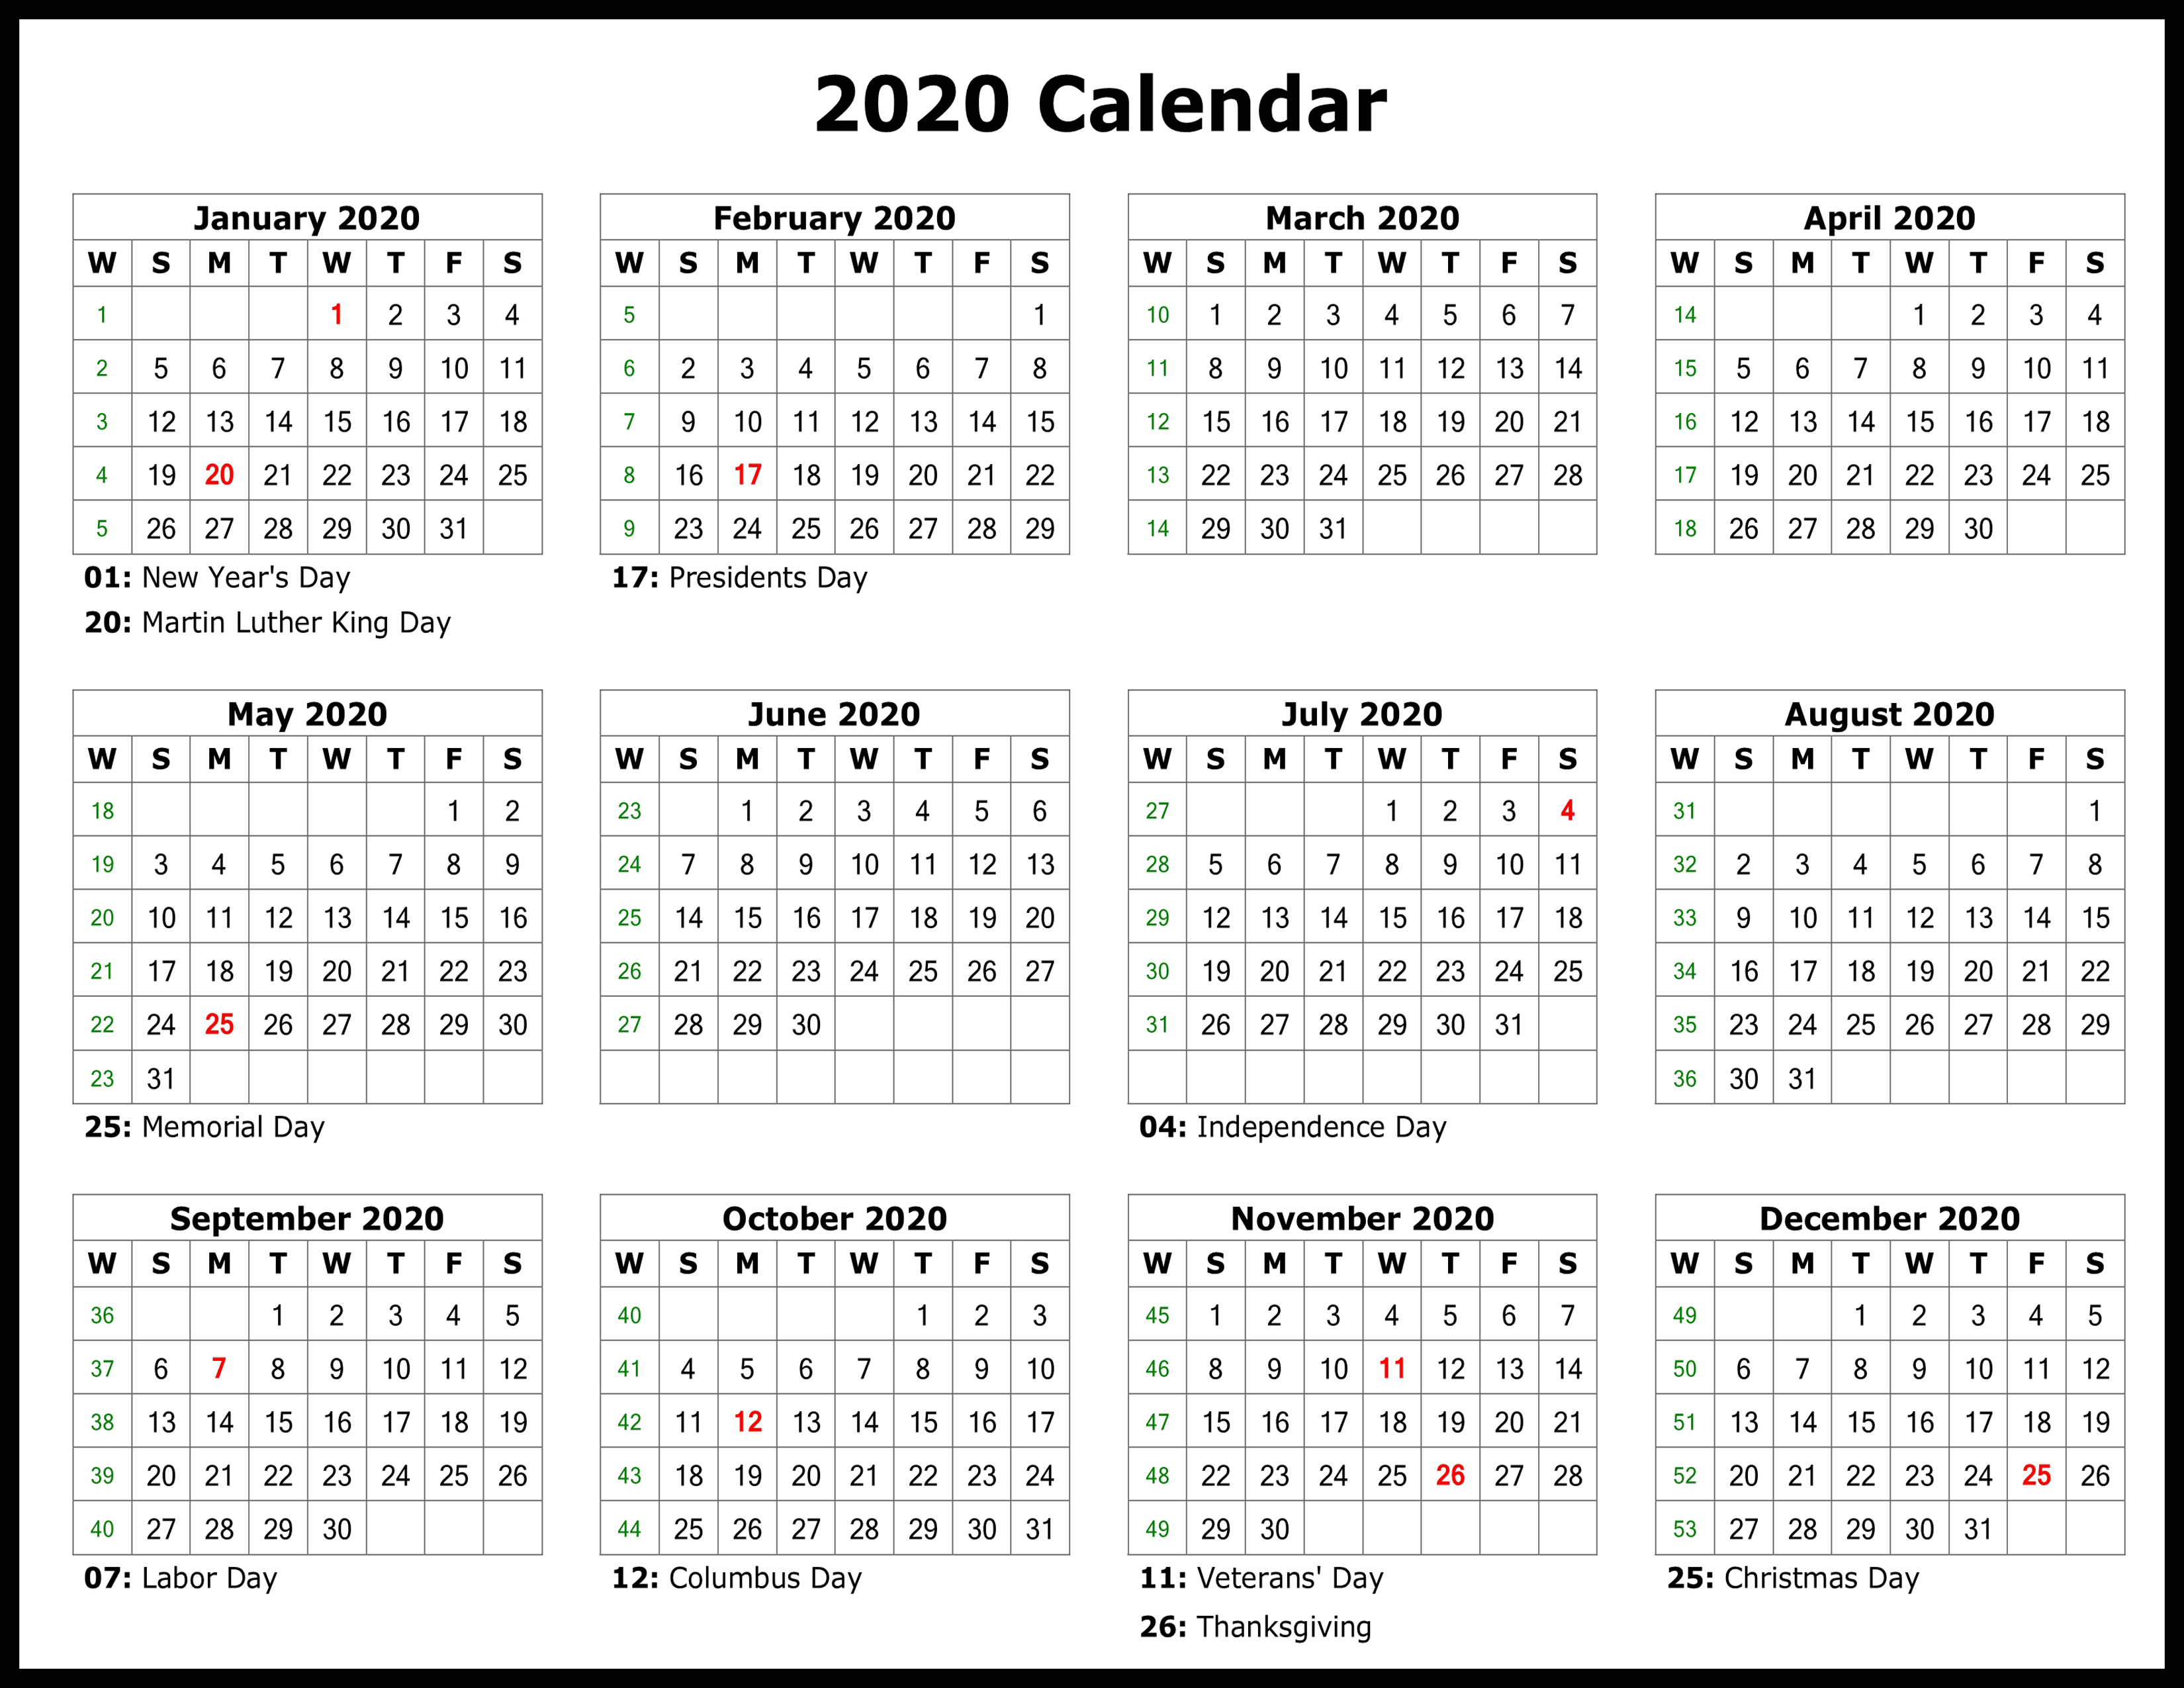 Free Printable Calendar 2020 Template In Pdf, Word, Excel